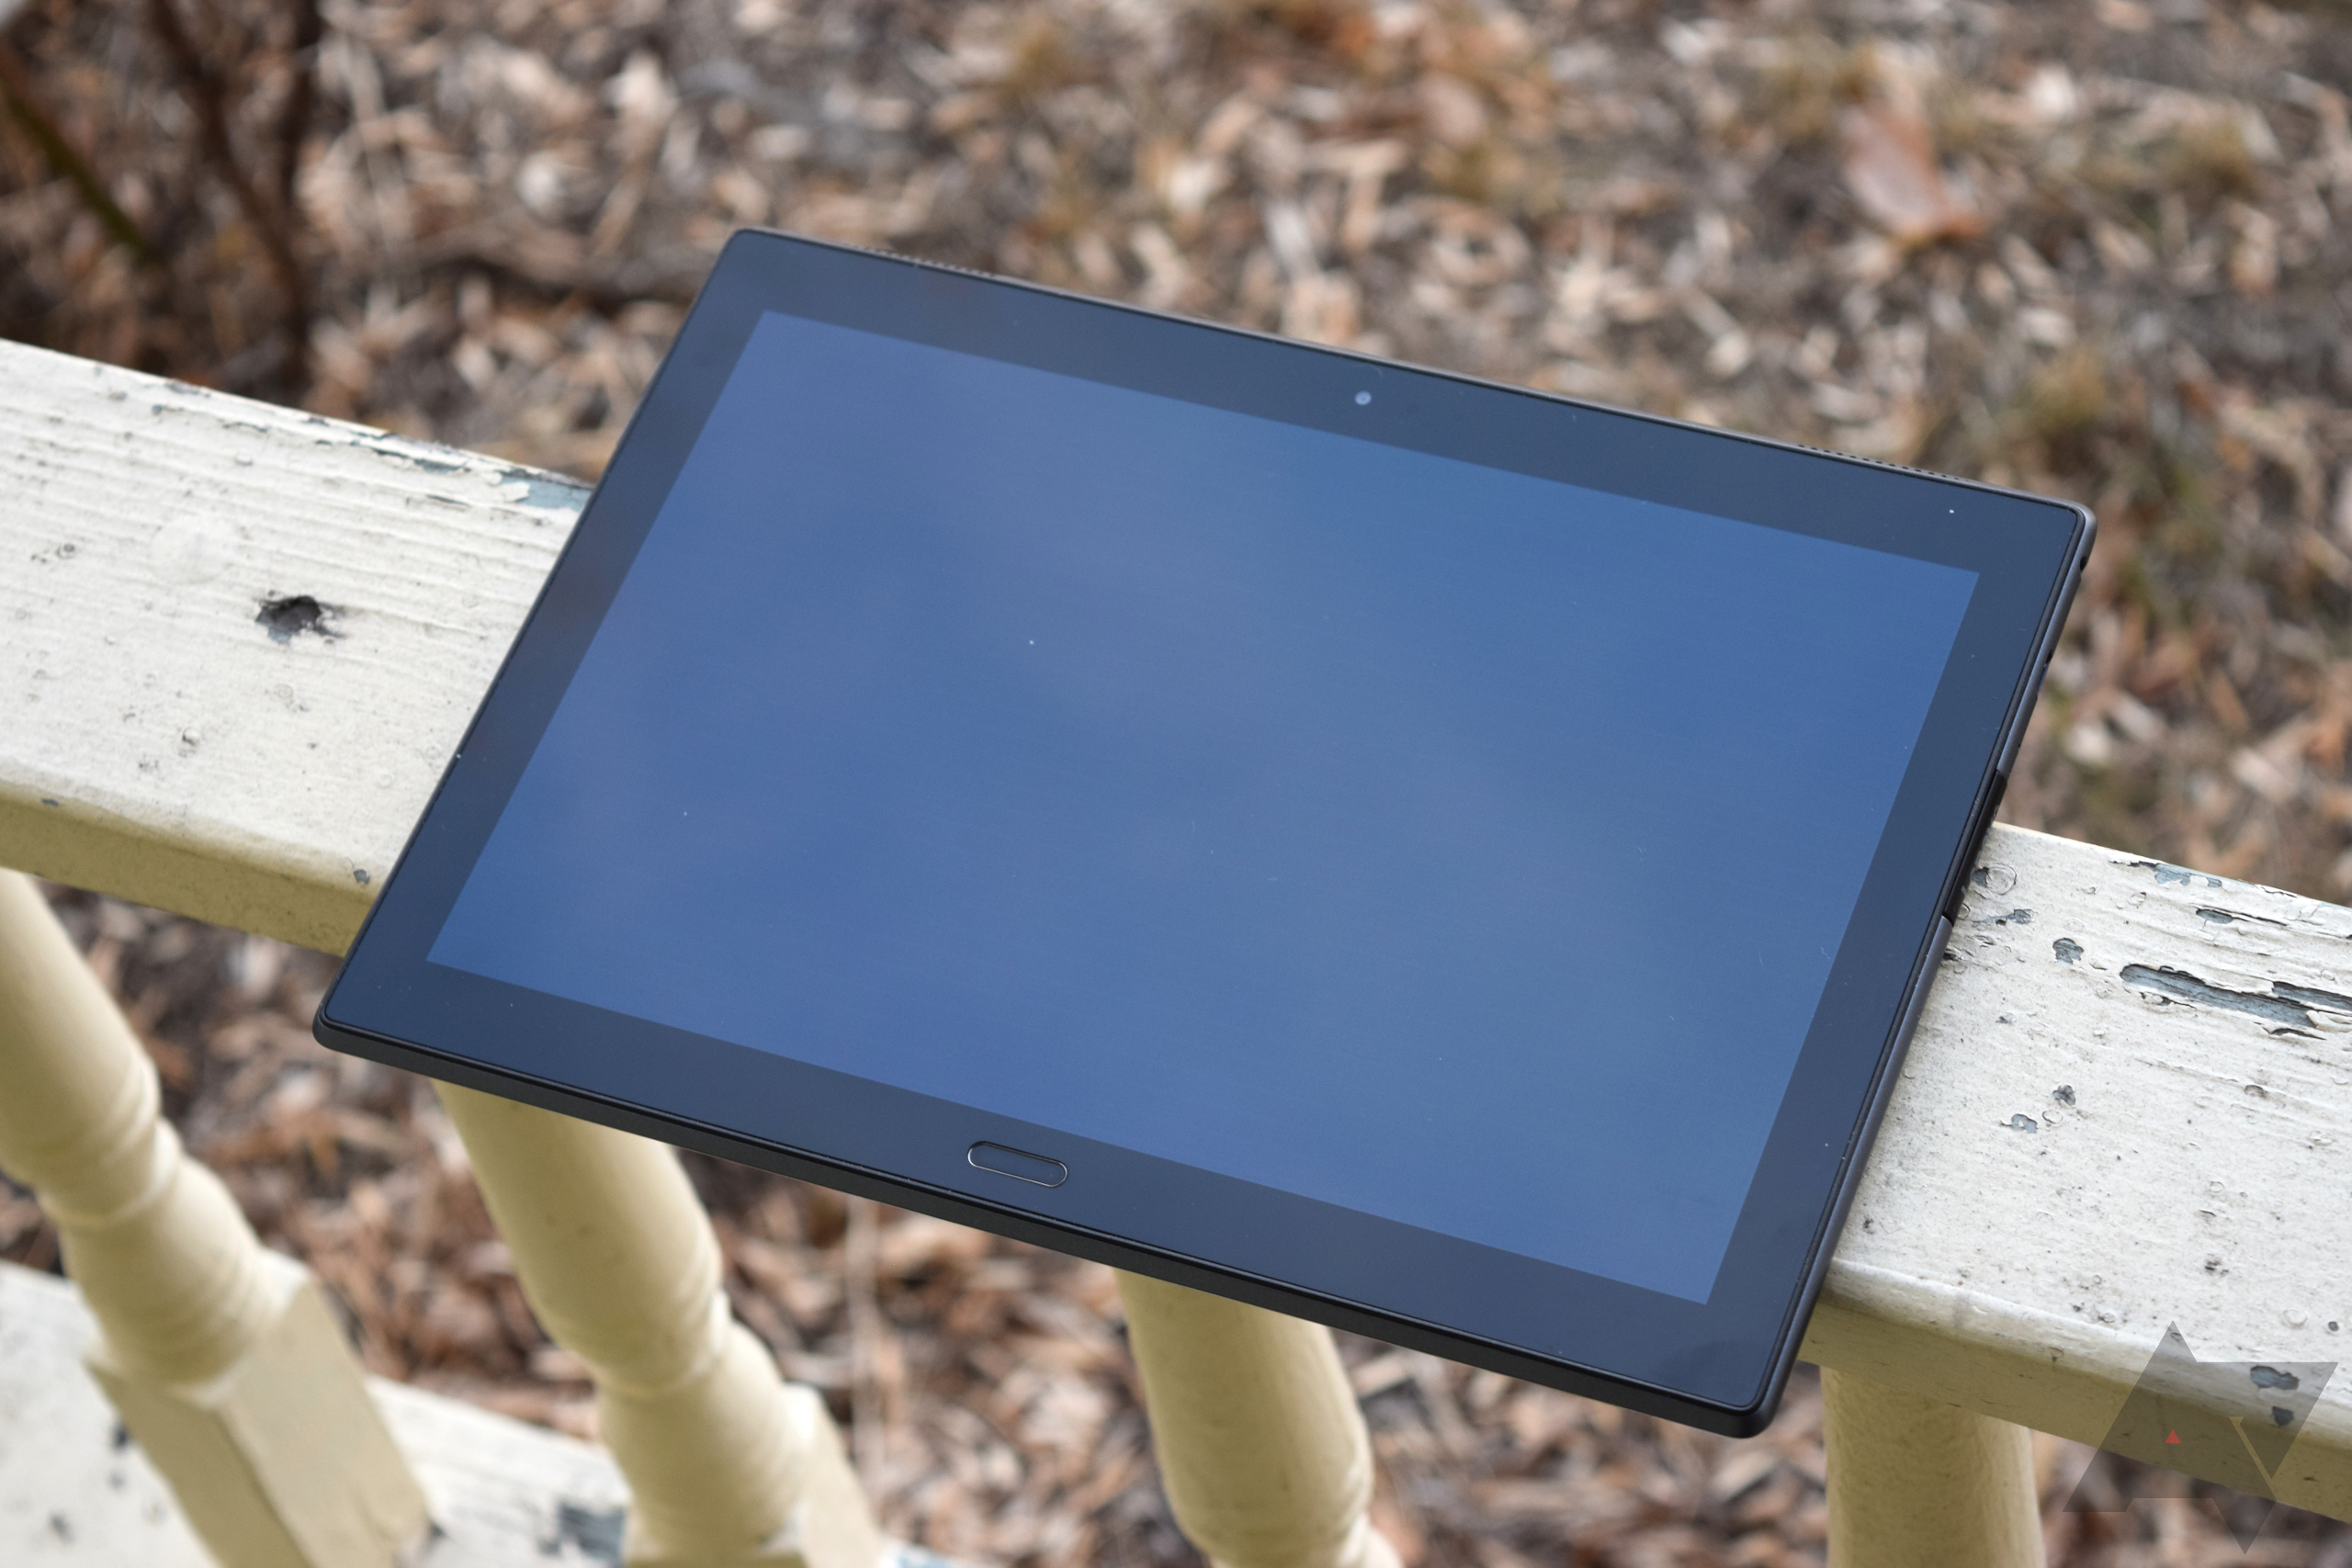 Moto Tab review: Look elsewhere for your tablet needs